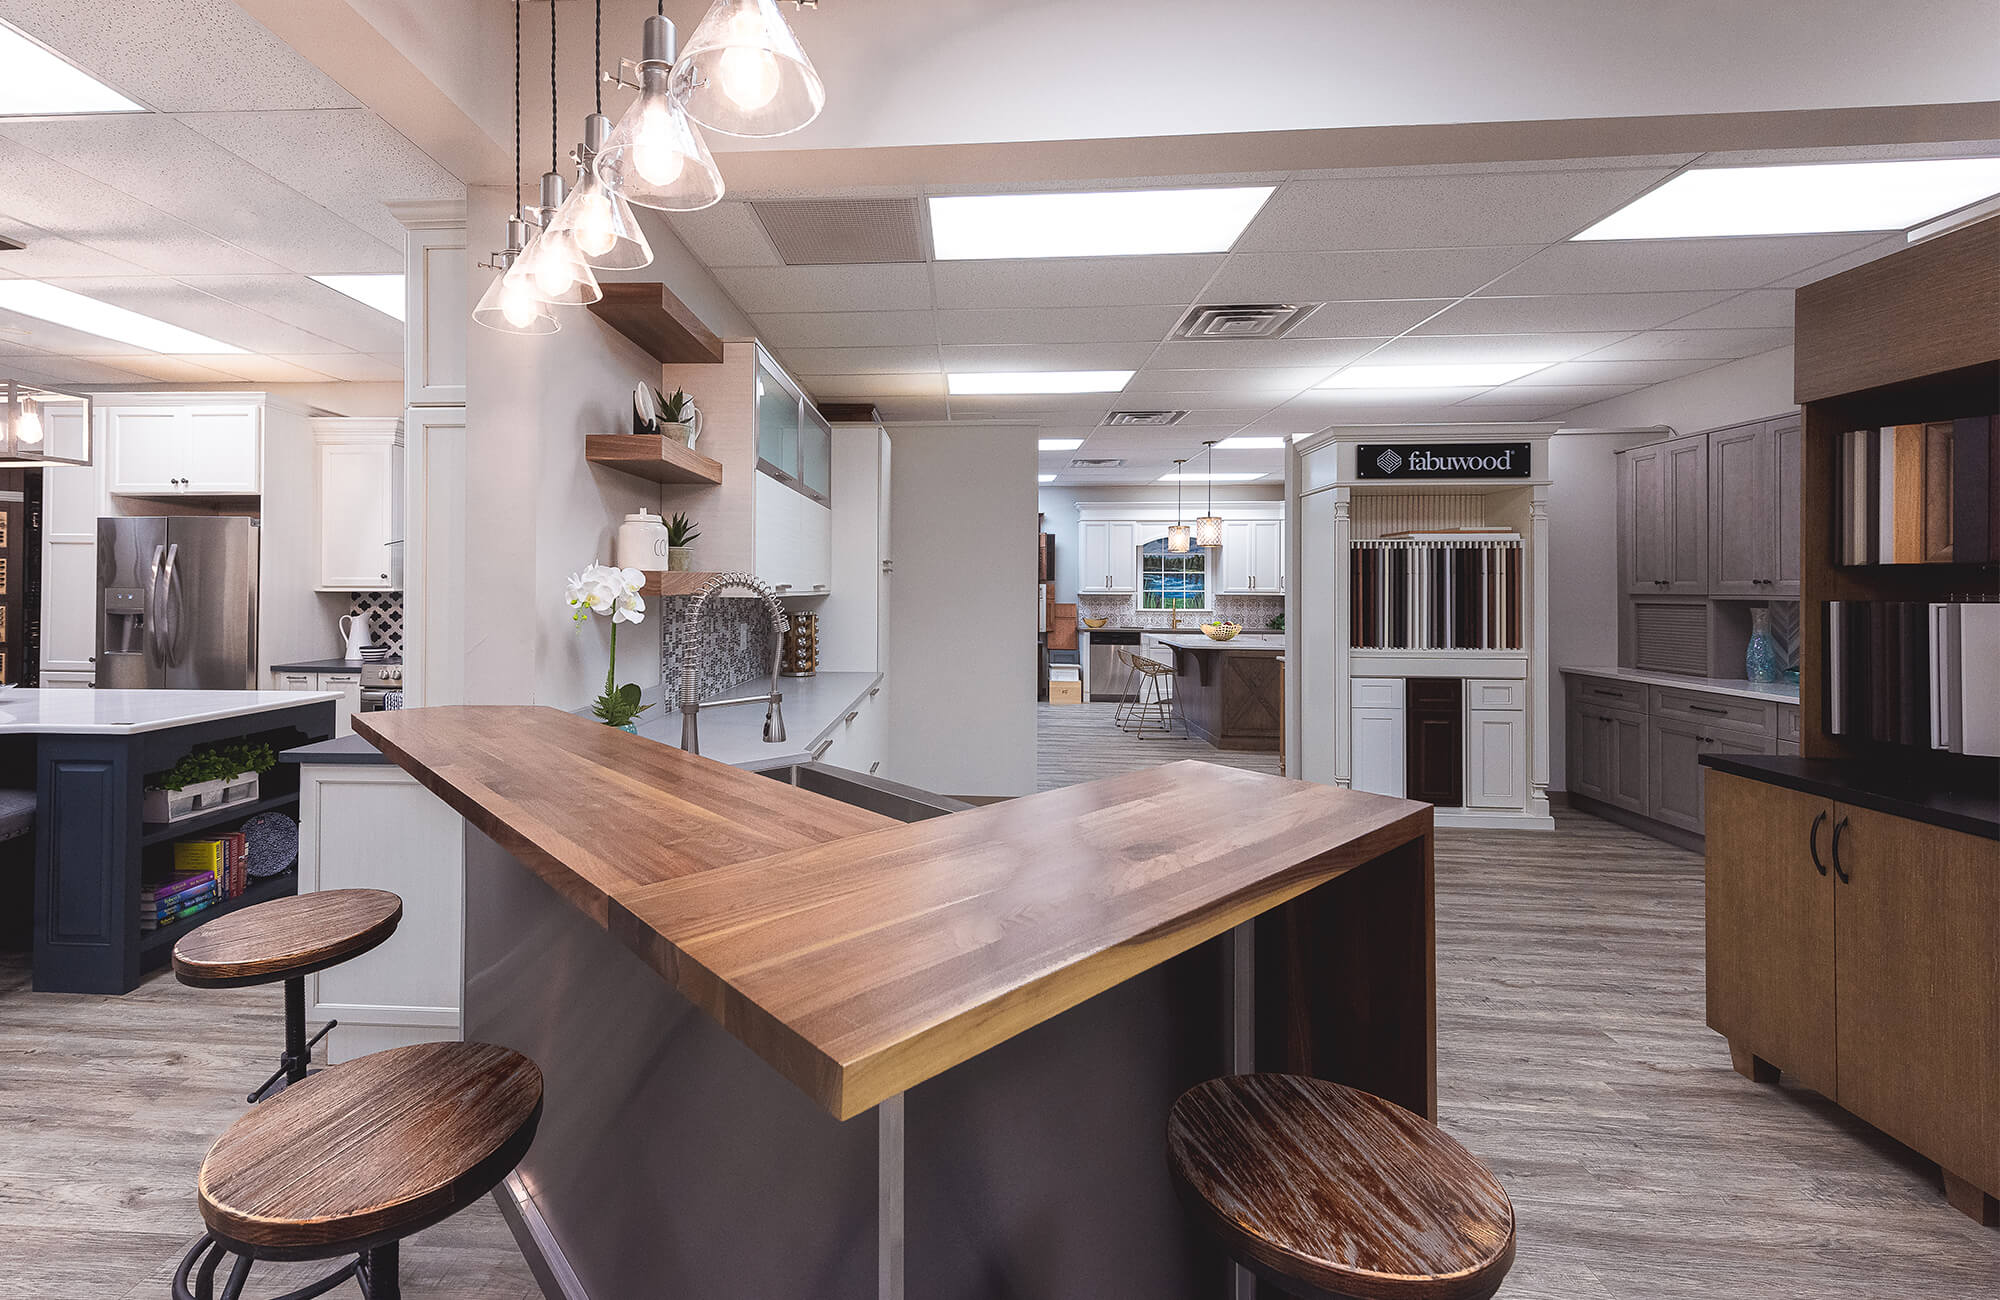 Corner wooden table in showroom kitchen